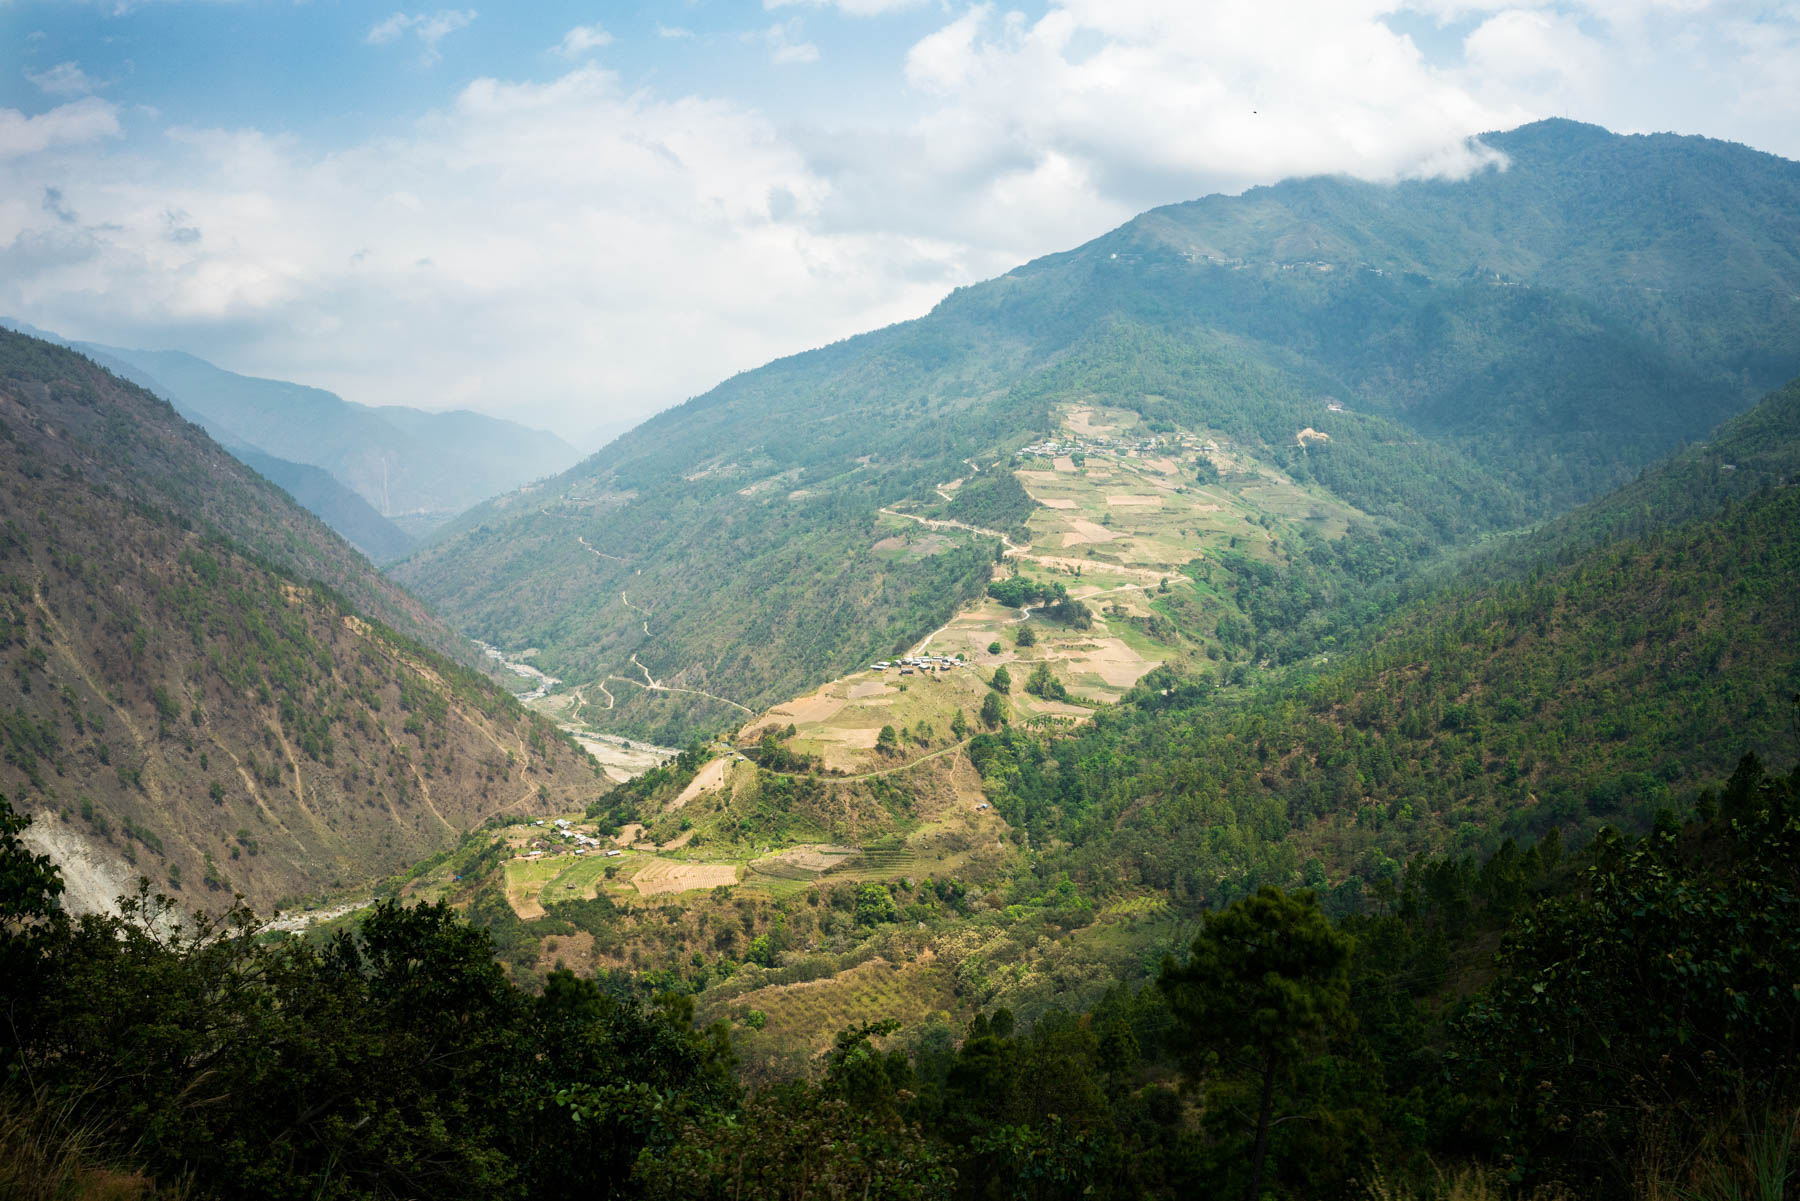 Backpacking Arunachal Pradesh travel guide - Scenic landscape on the way to Bomdila - Lost With Purpose